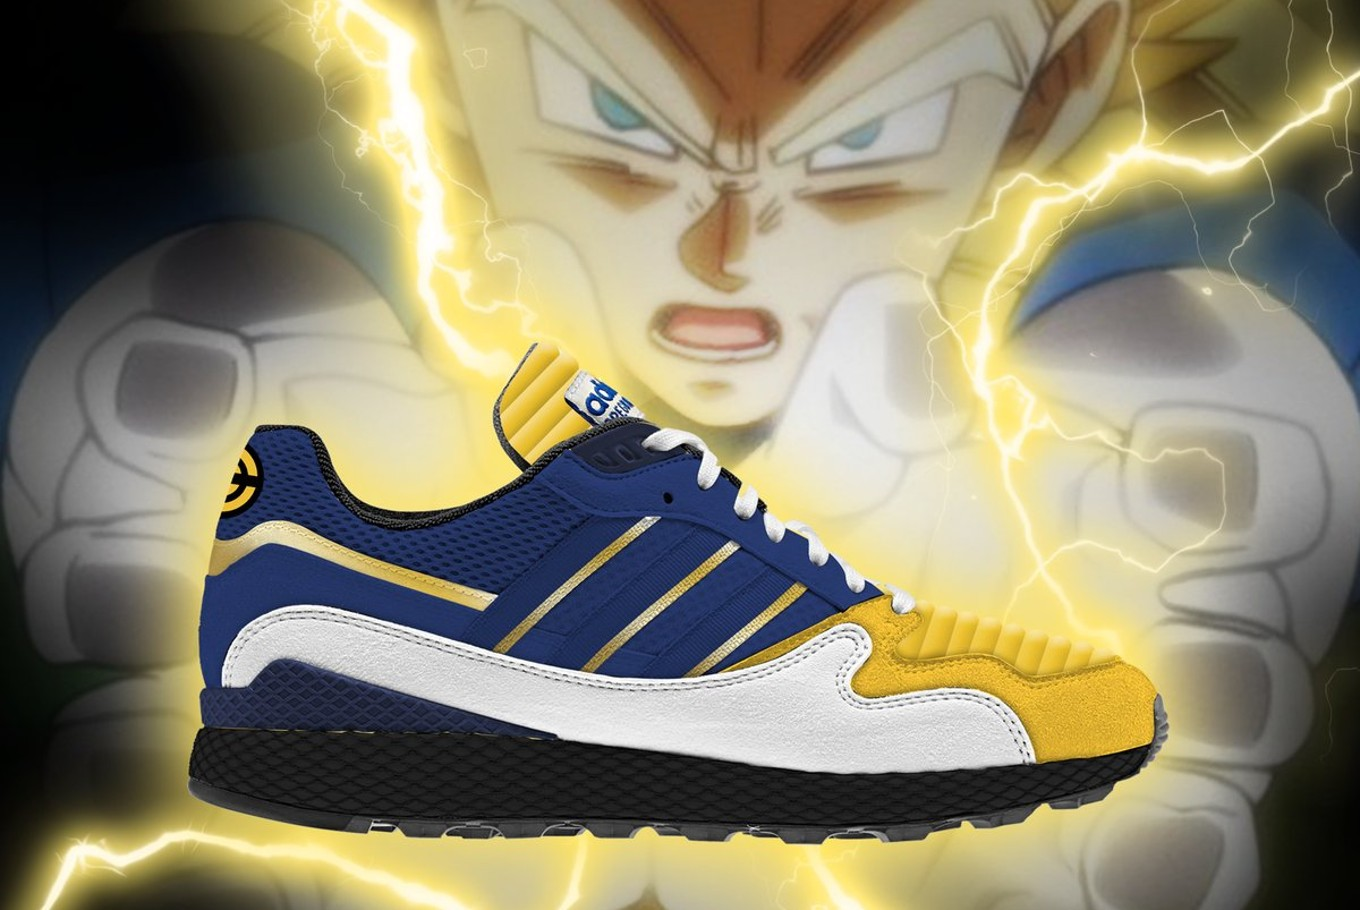 Adidas To Launch Dragon Ball Z Sneakers This Year